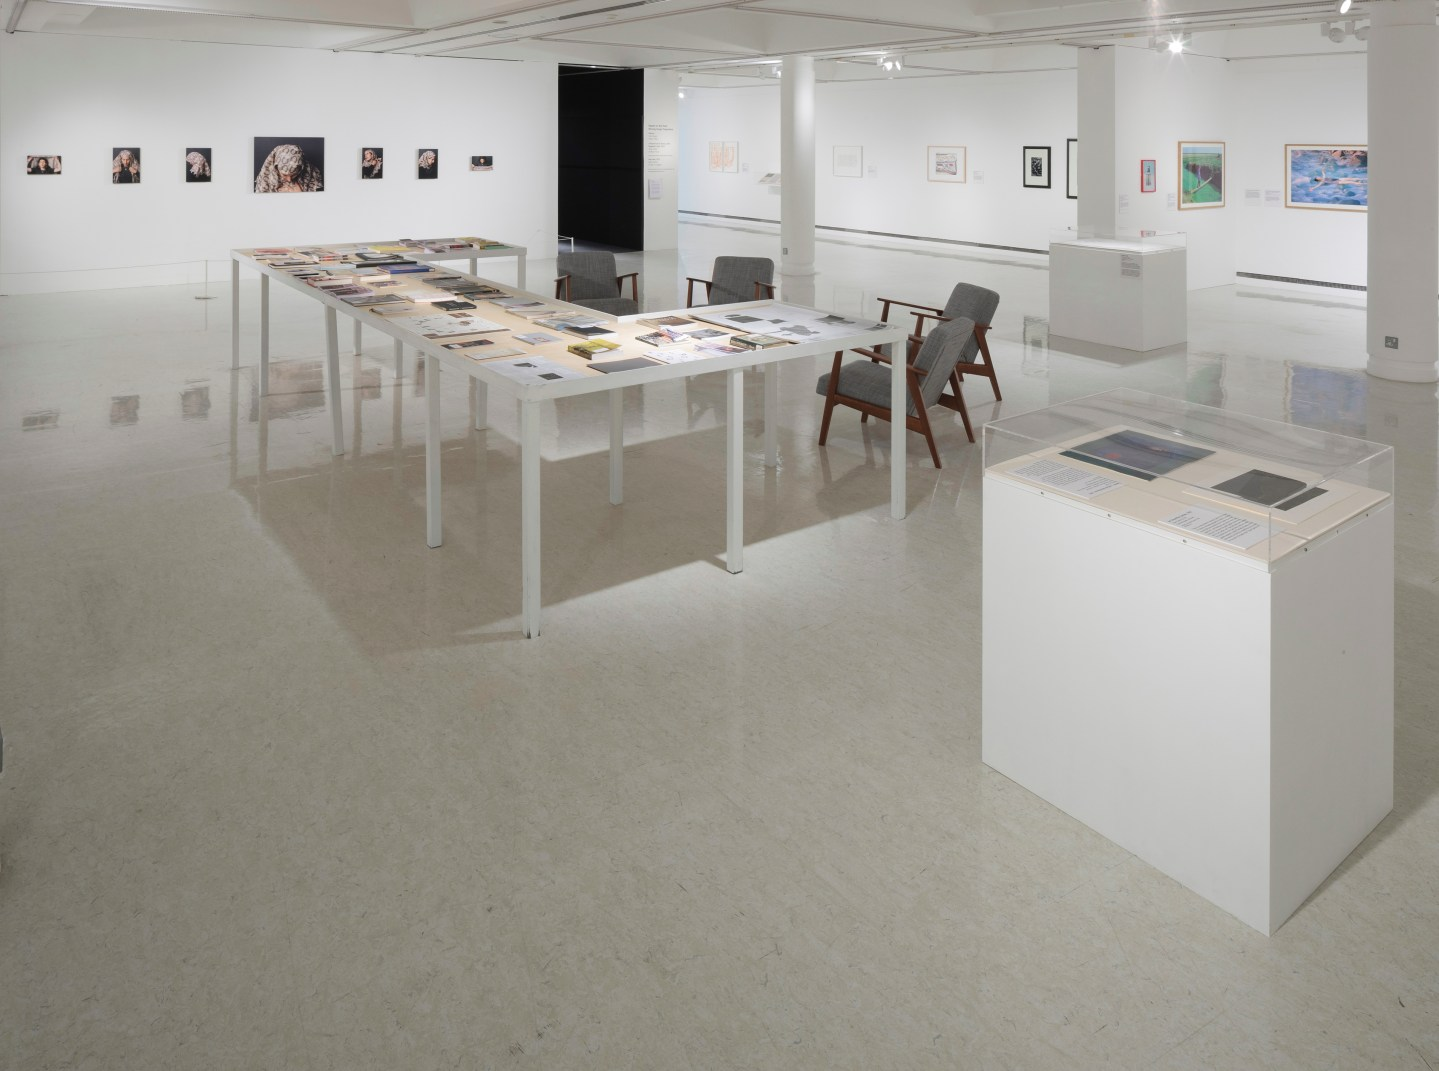 Ripples on the Pond, installation shot. Photo copyright Ruth Clark